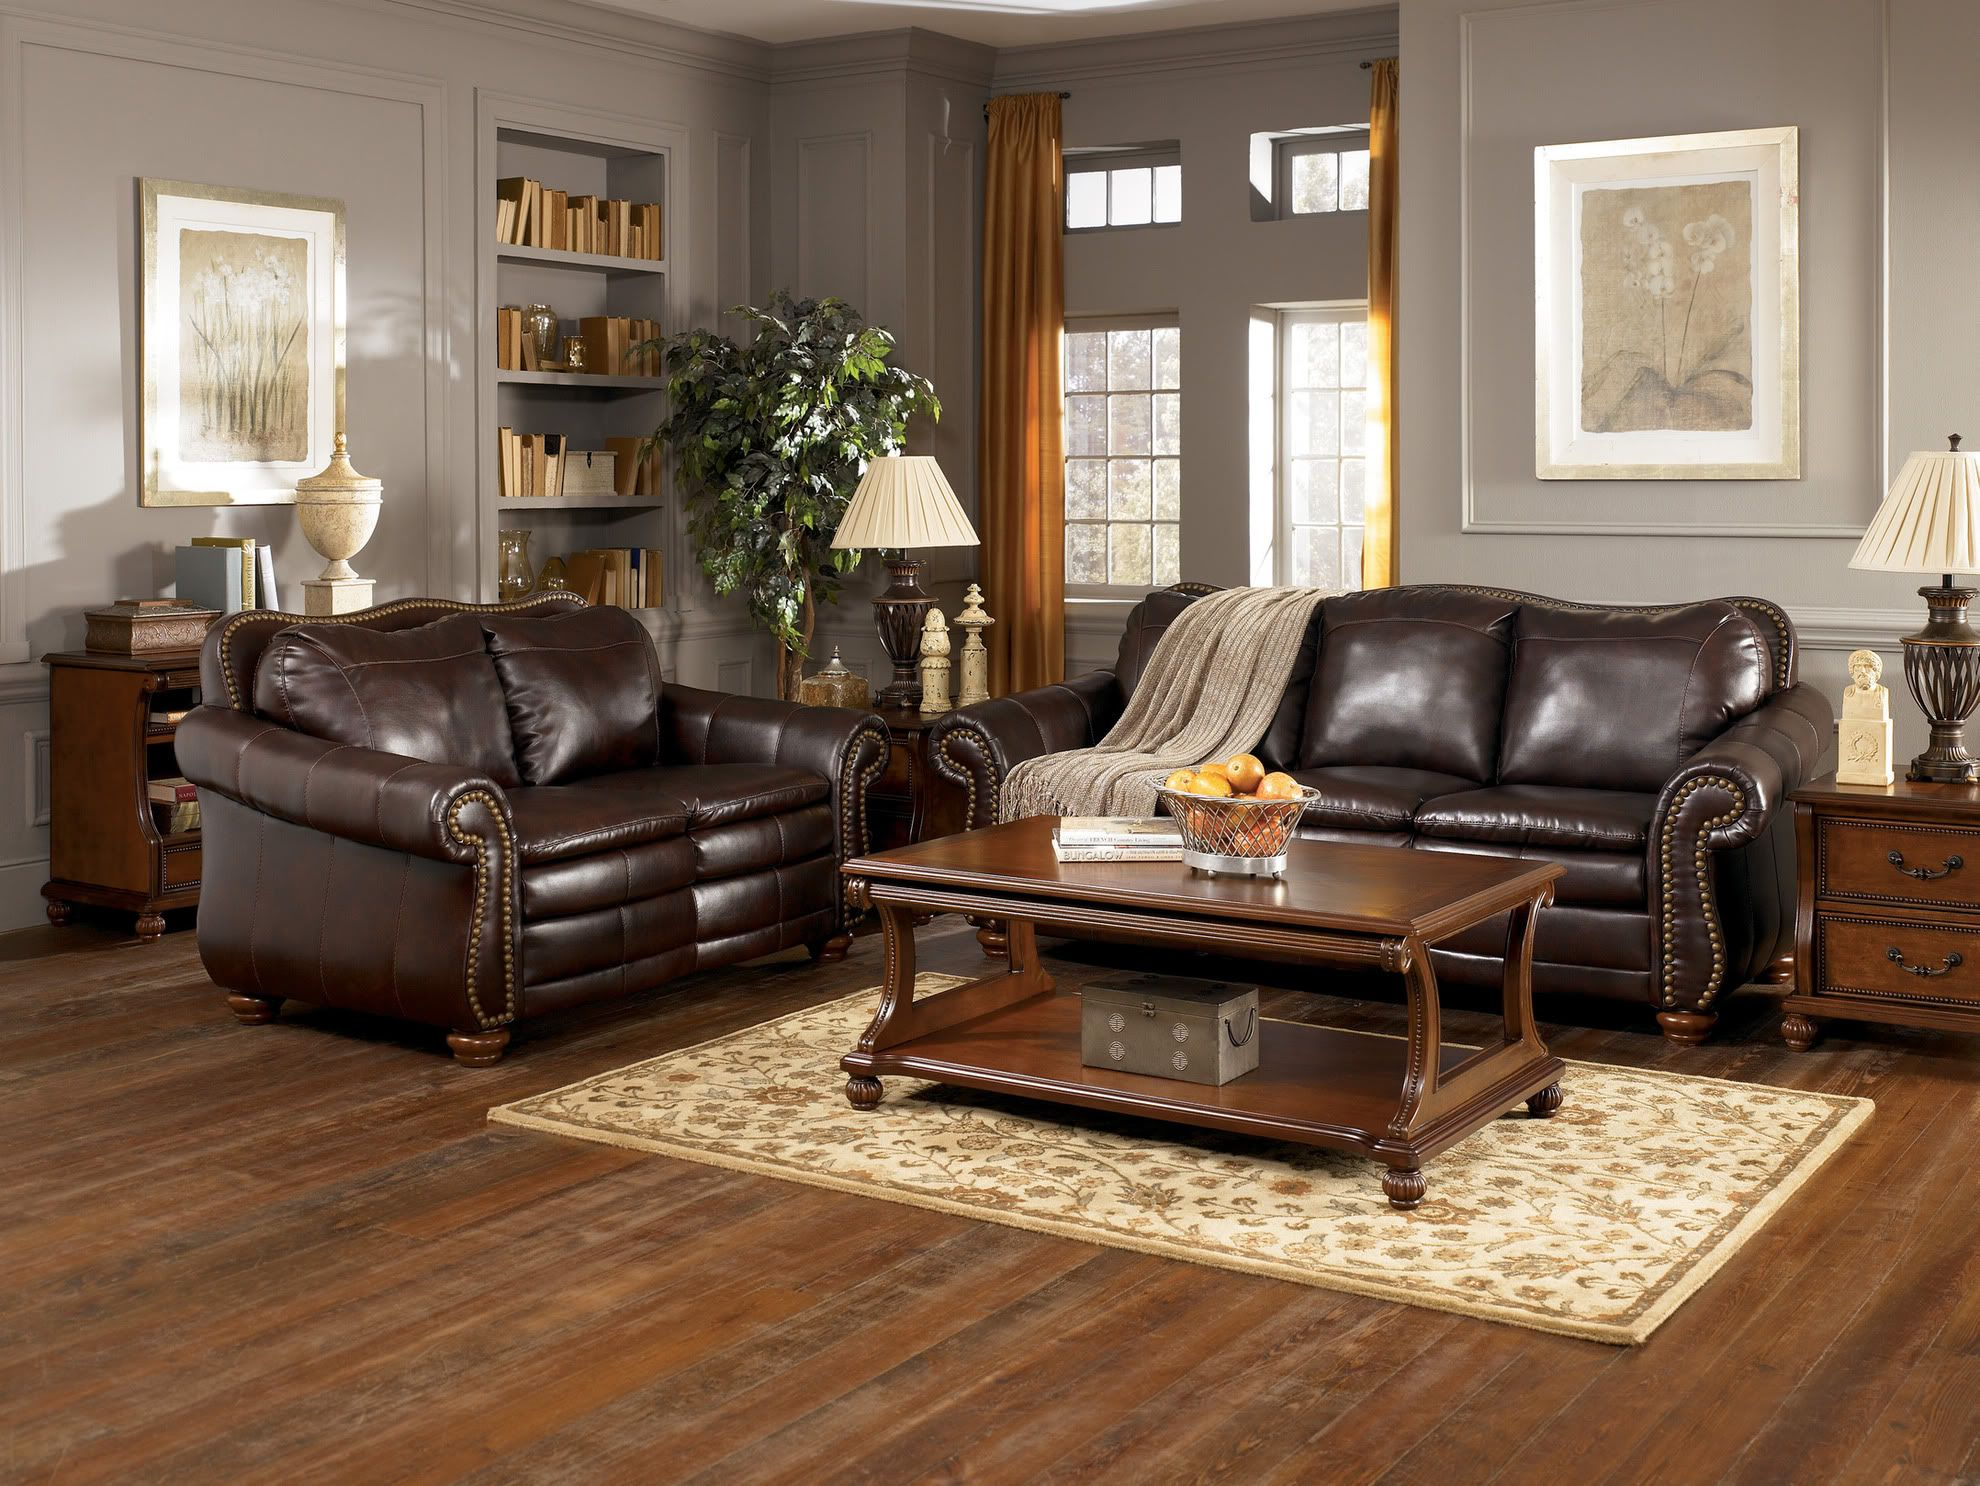 Best Fetching Grey Living Room With Brown Furniture Design 400 x 300